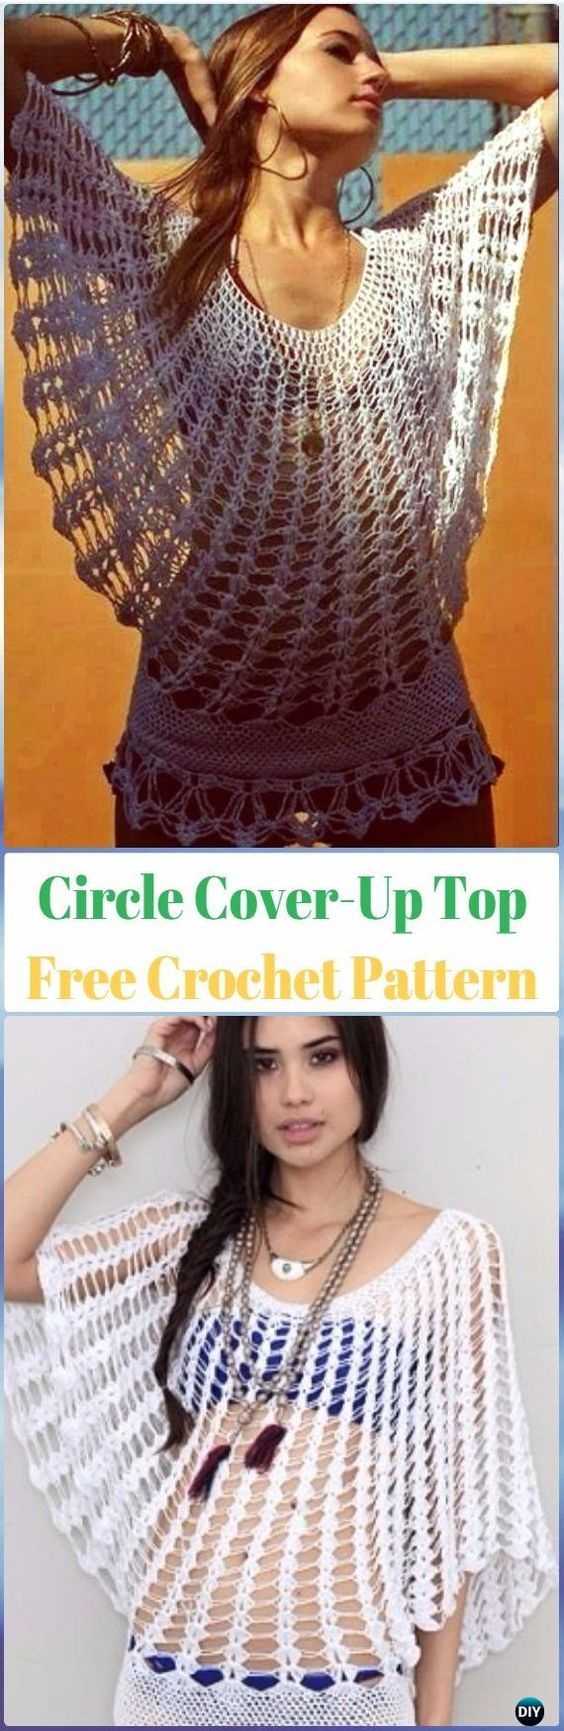 The 25 best diy crochet beach cover up ideas on pinterest cute crochet beach cover up free patterns for women bankloansurffo Gallery